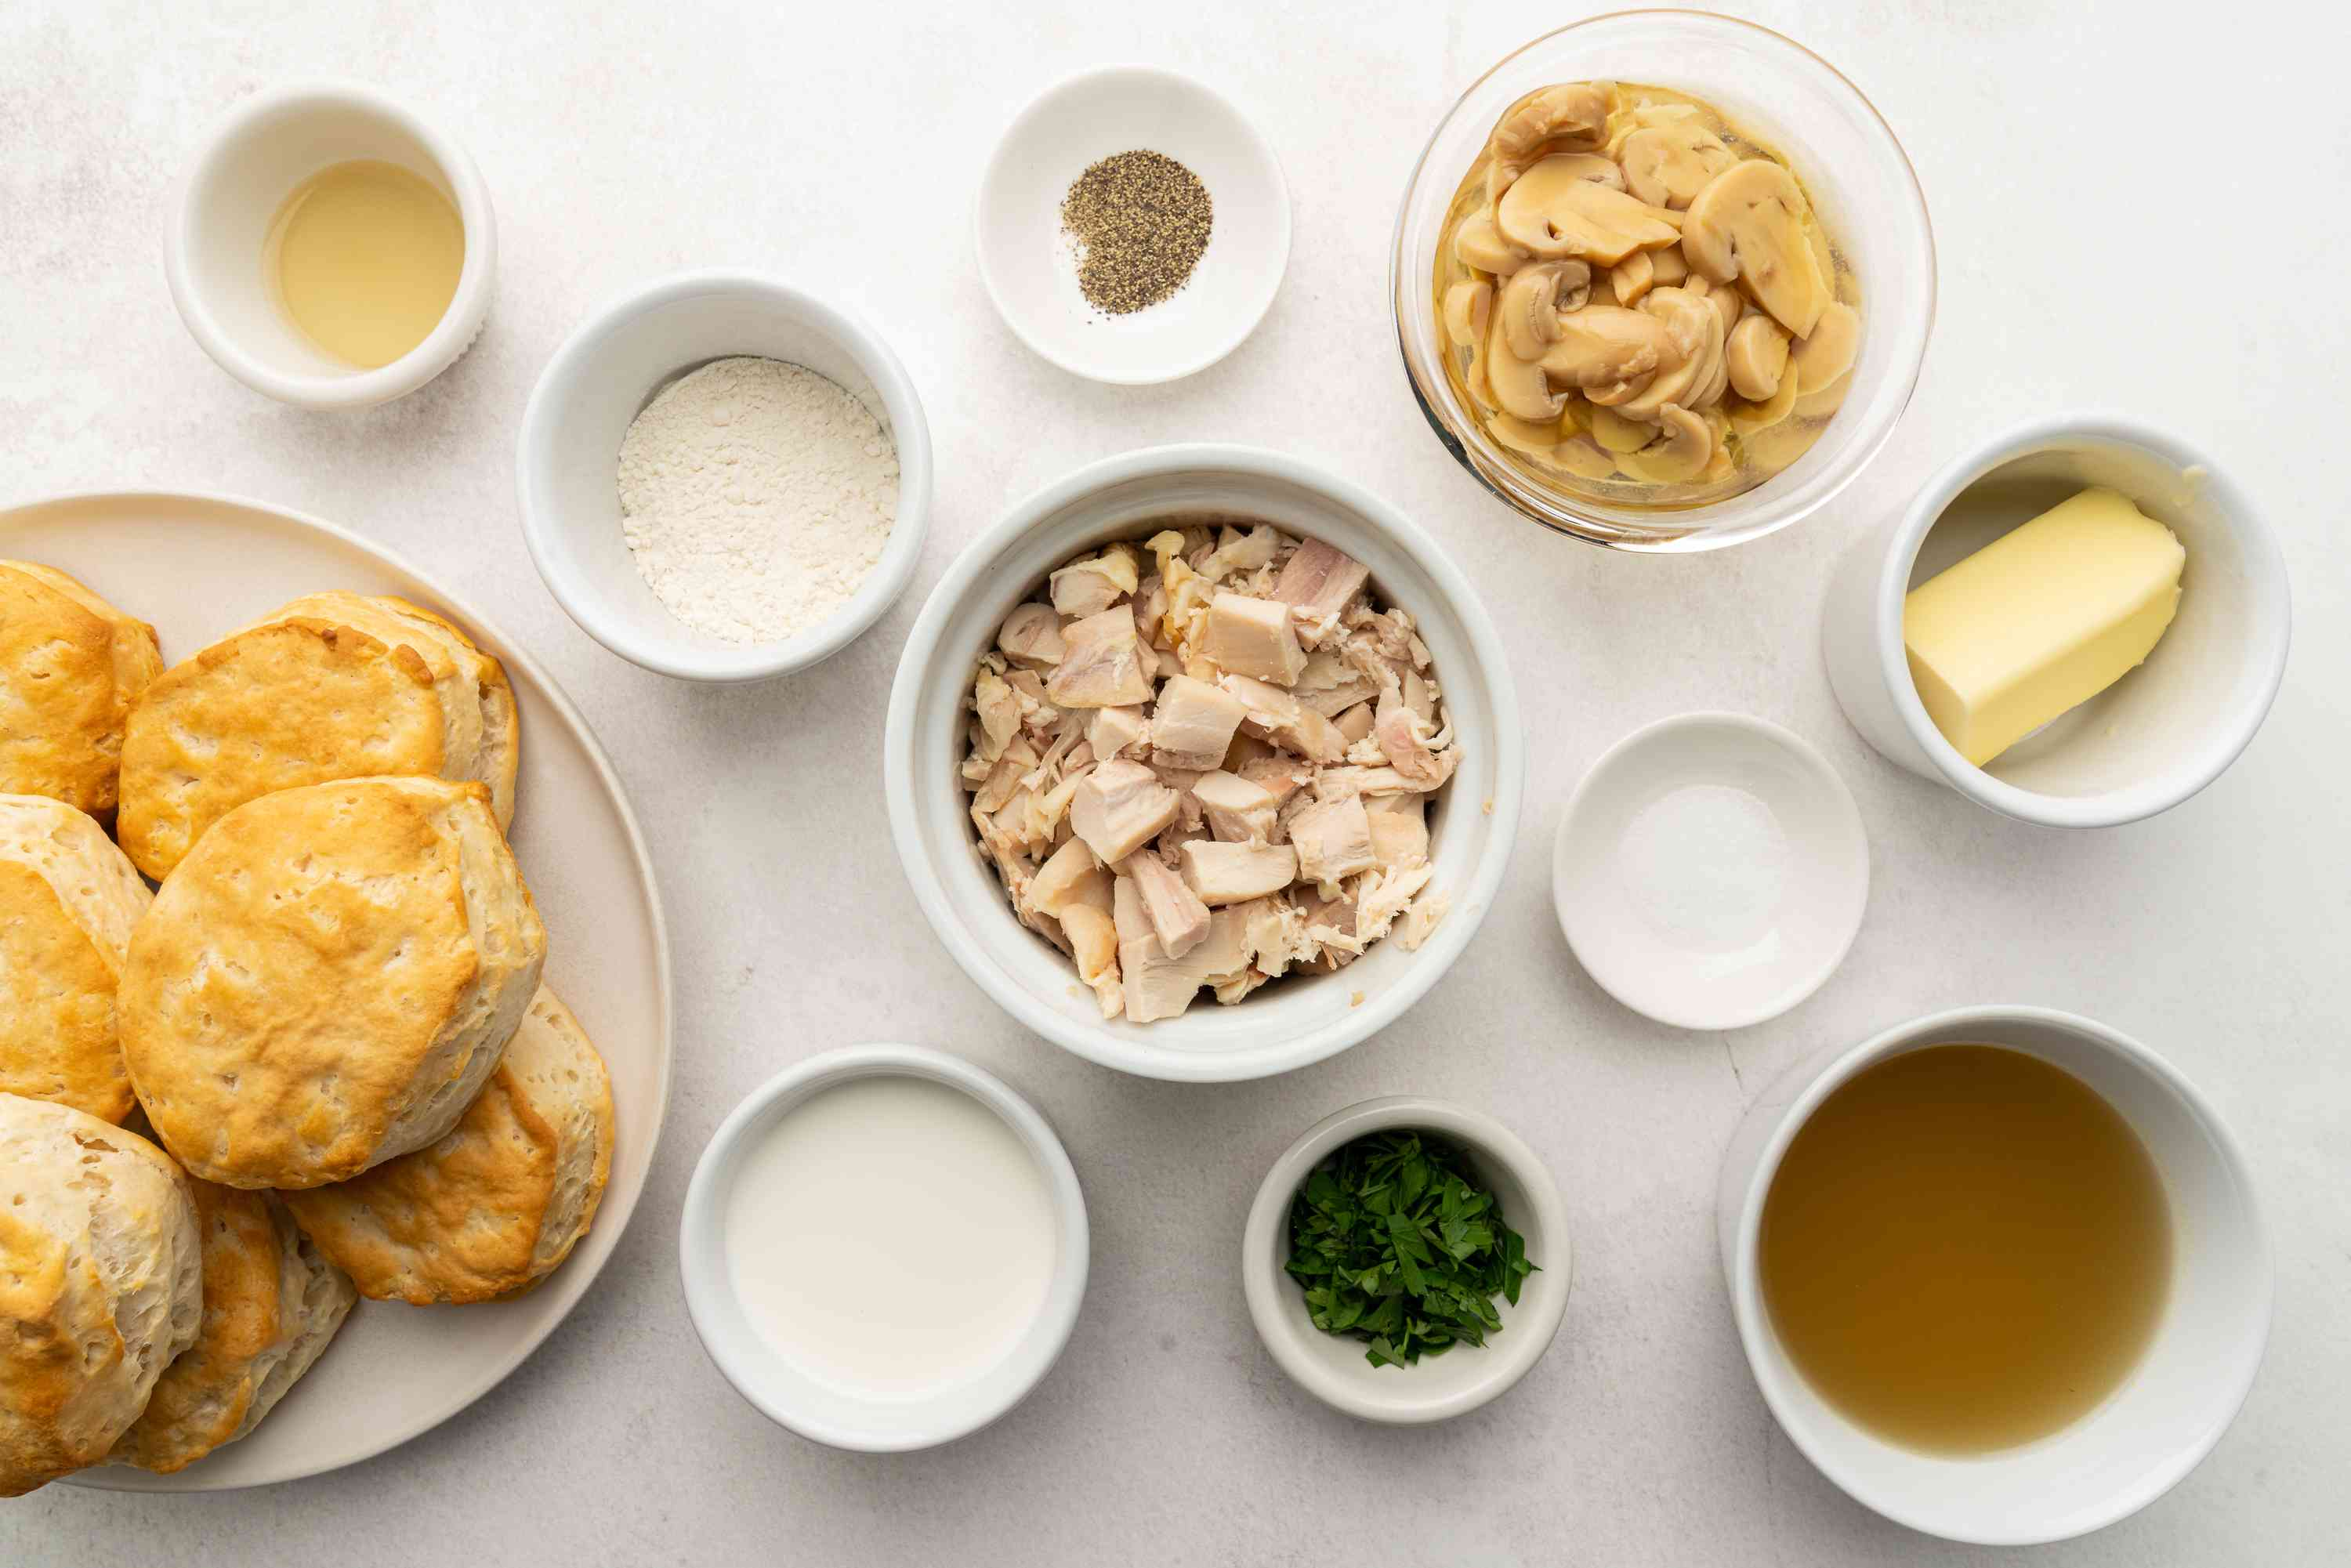 20-Minute Creamed Chicken With Mushrooms ingredients